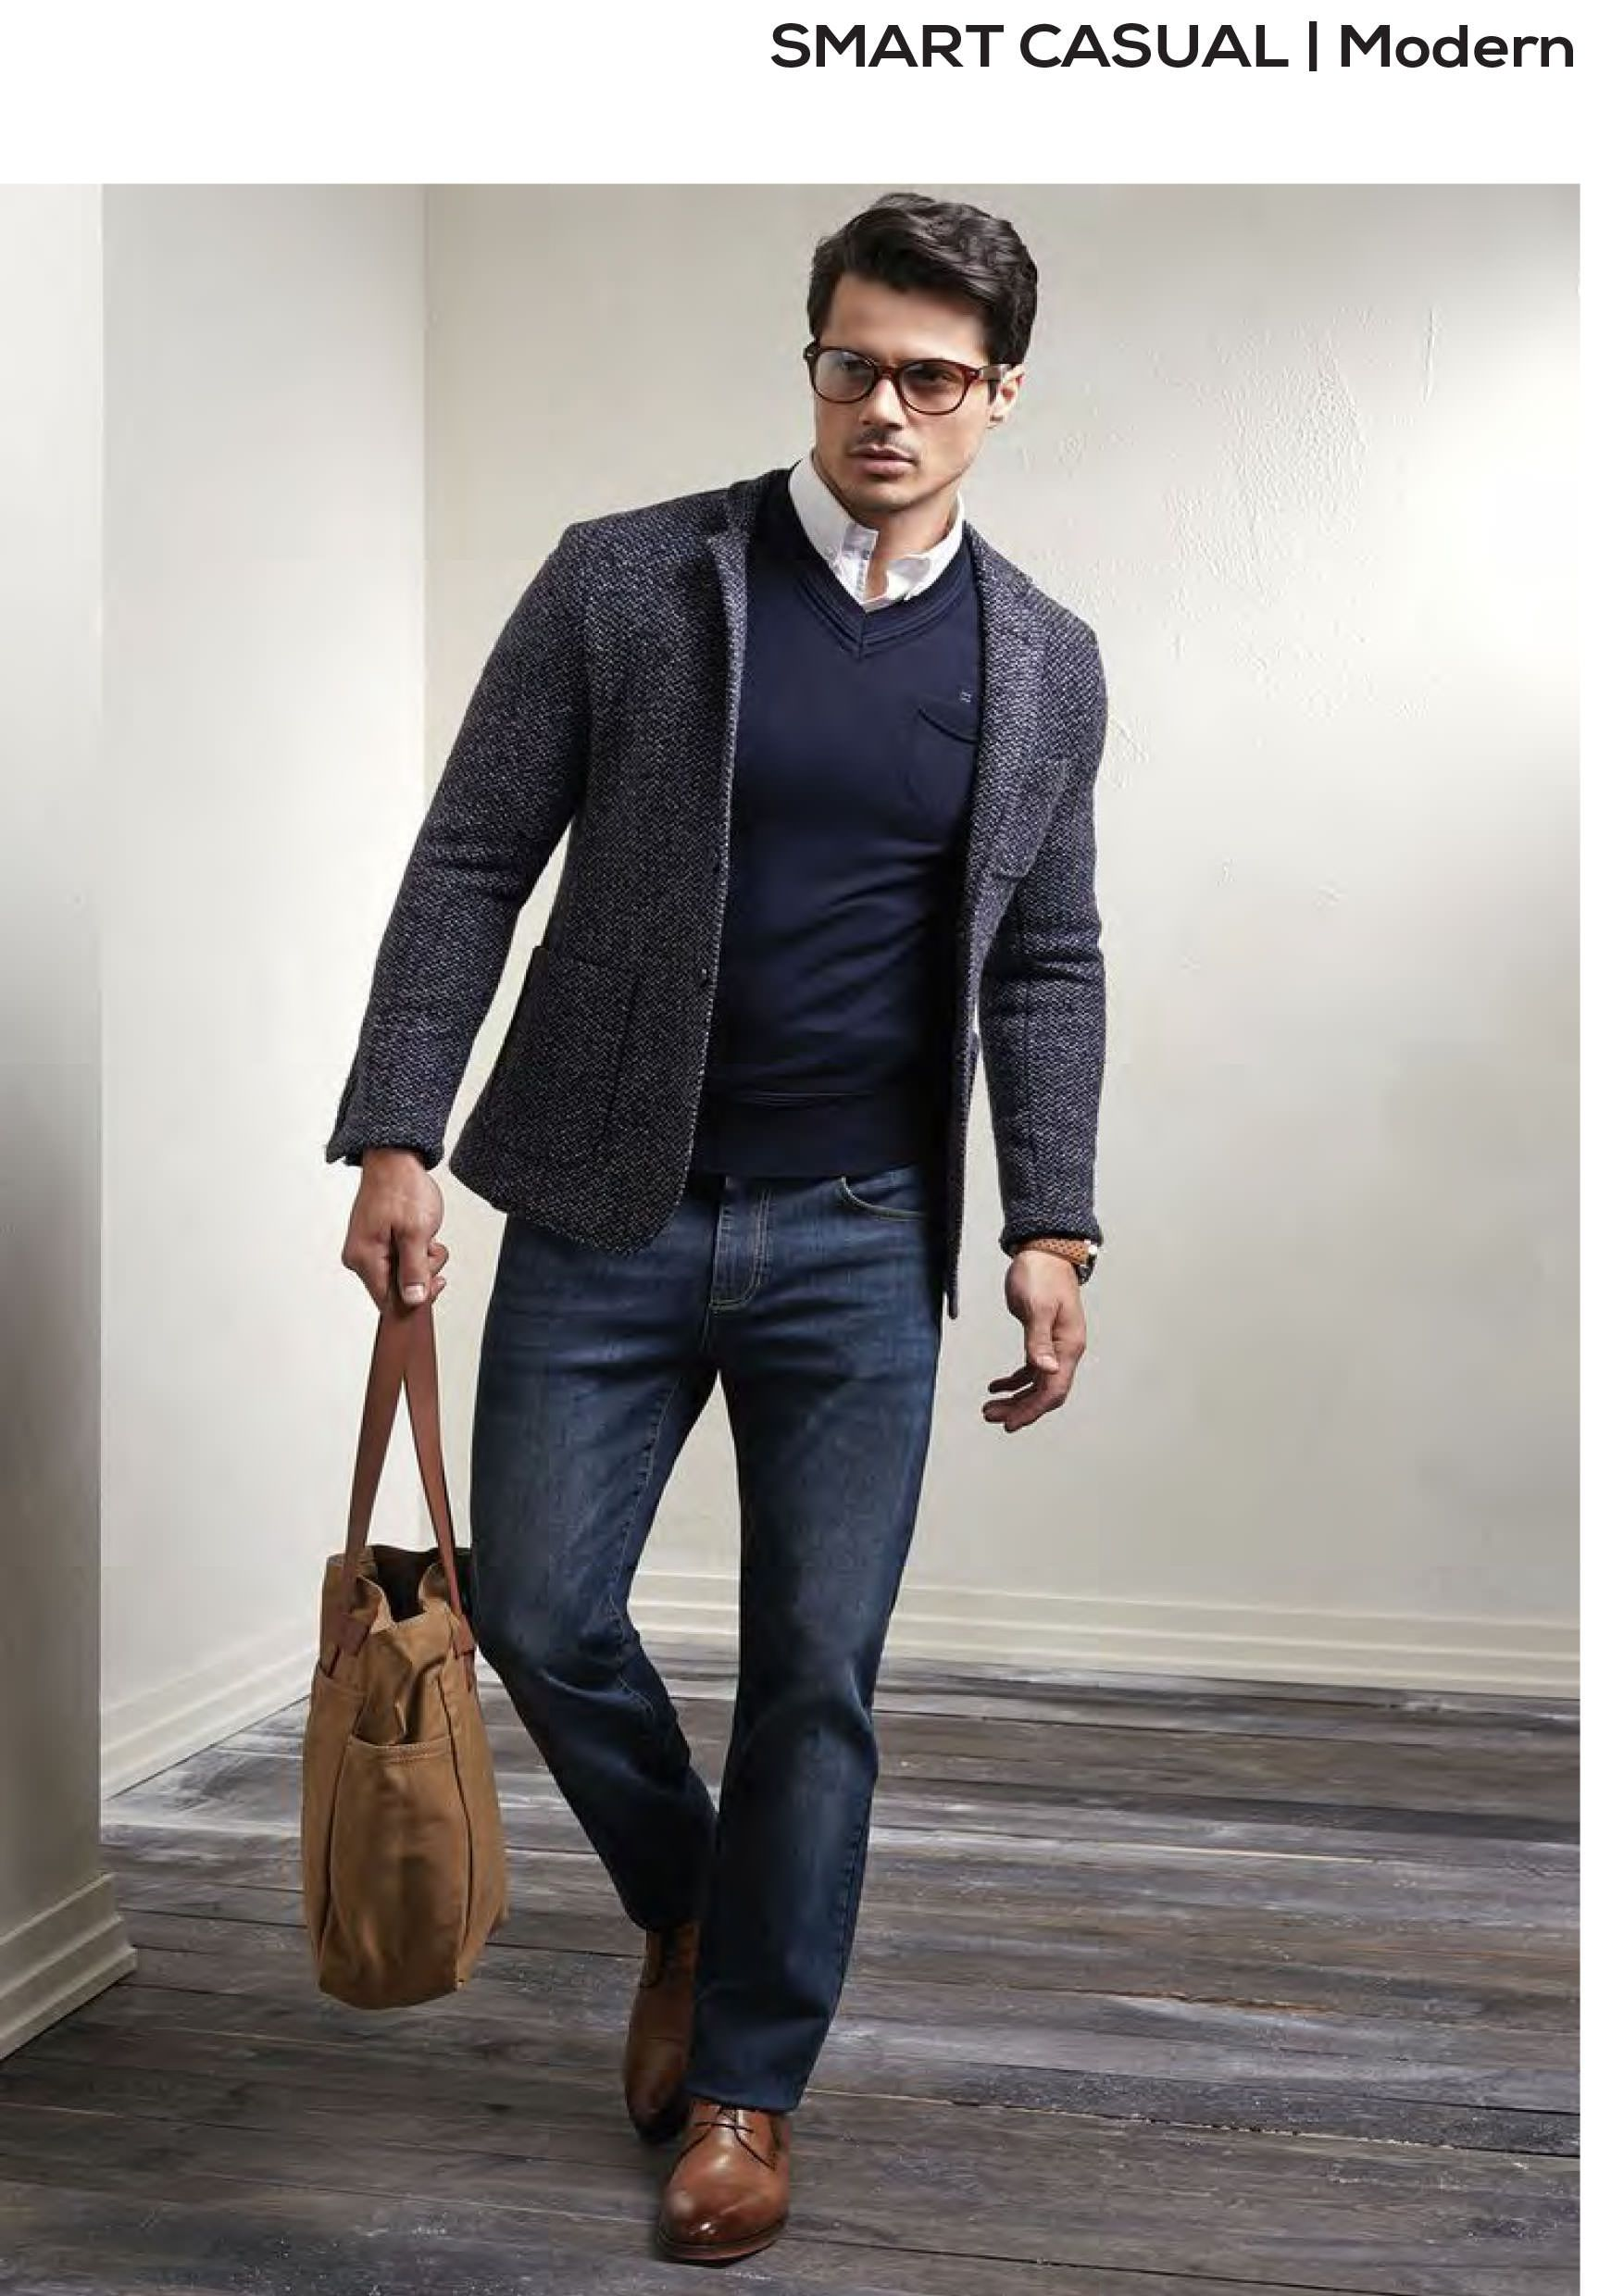 best menswear smart casual modern look  with structured